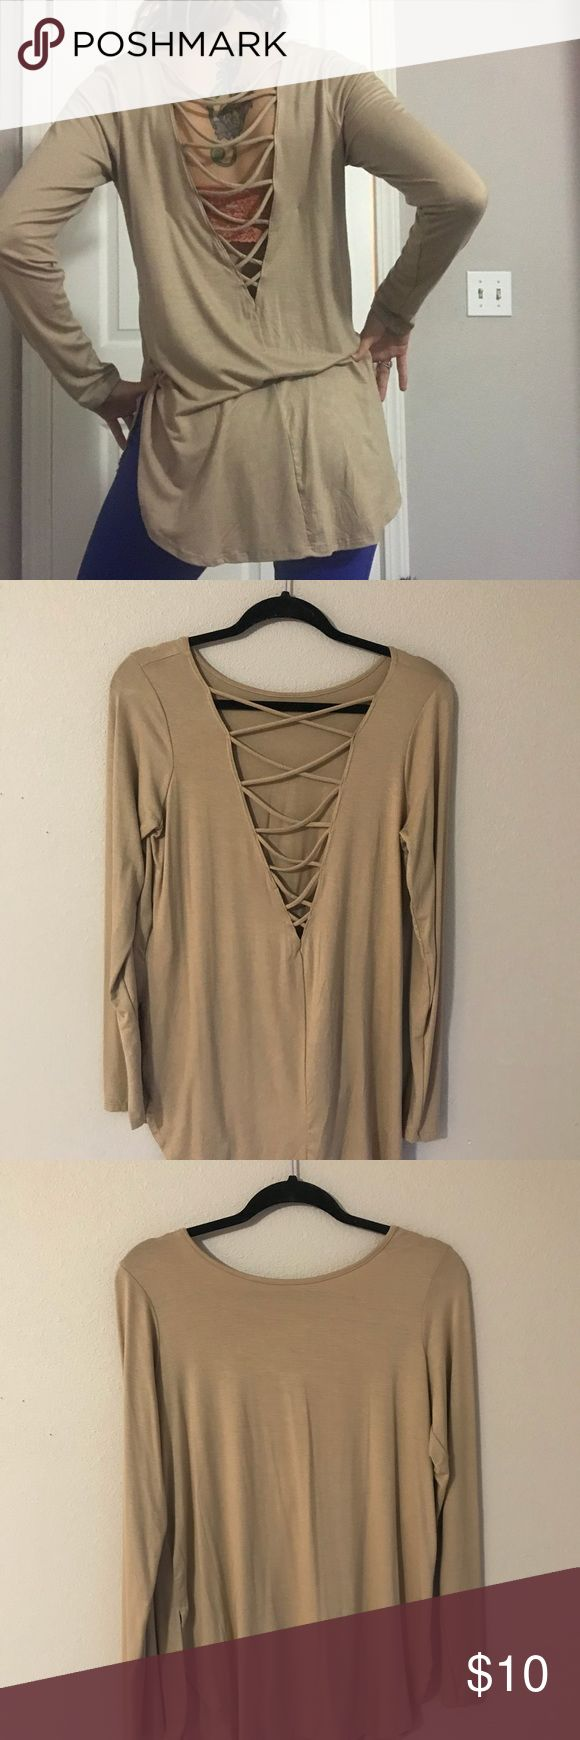 Forever 21 nude long sleeve top Brand new w/out tags. Never worn except to take these photos. Forever 21 nude colored top with string back. Forever 21 Tops Blouses